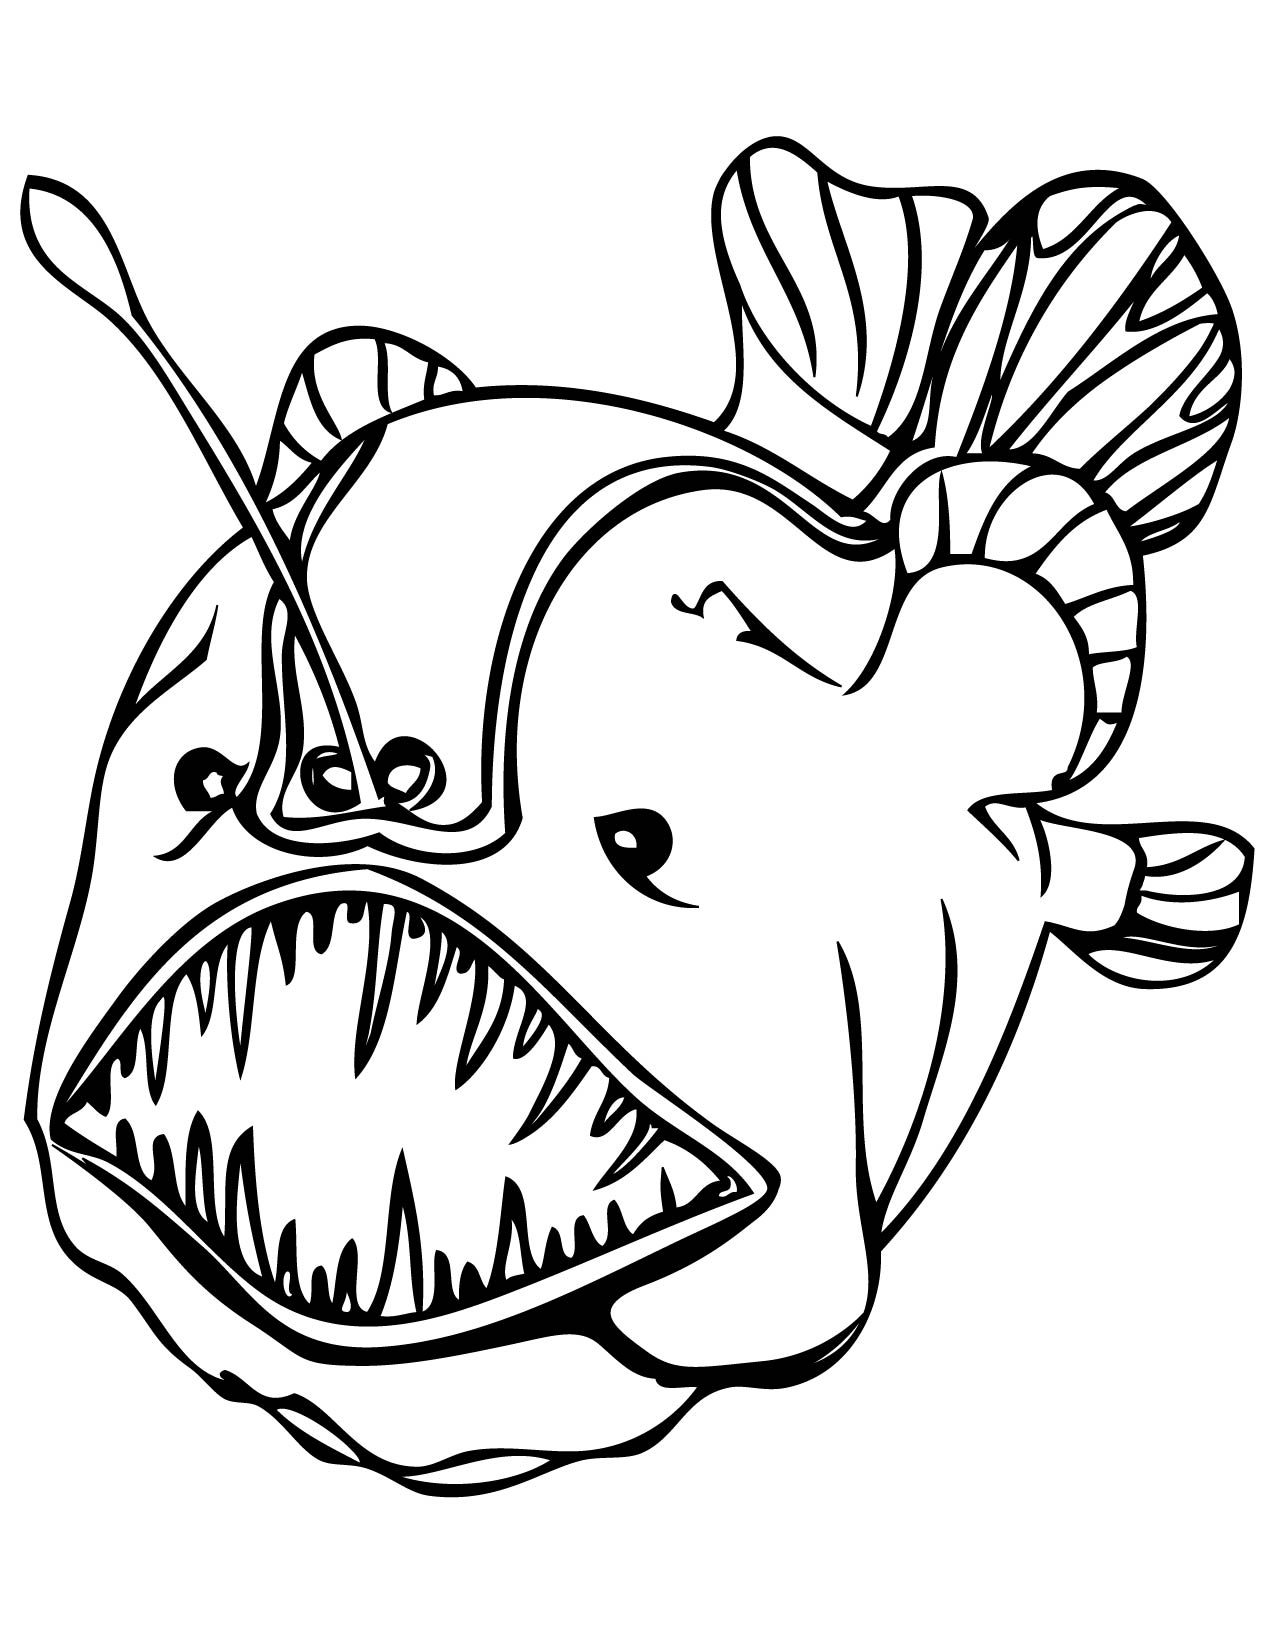 free coloring pages fish koi fish coloring page at getcoloringscom free free pages fish coloring